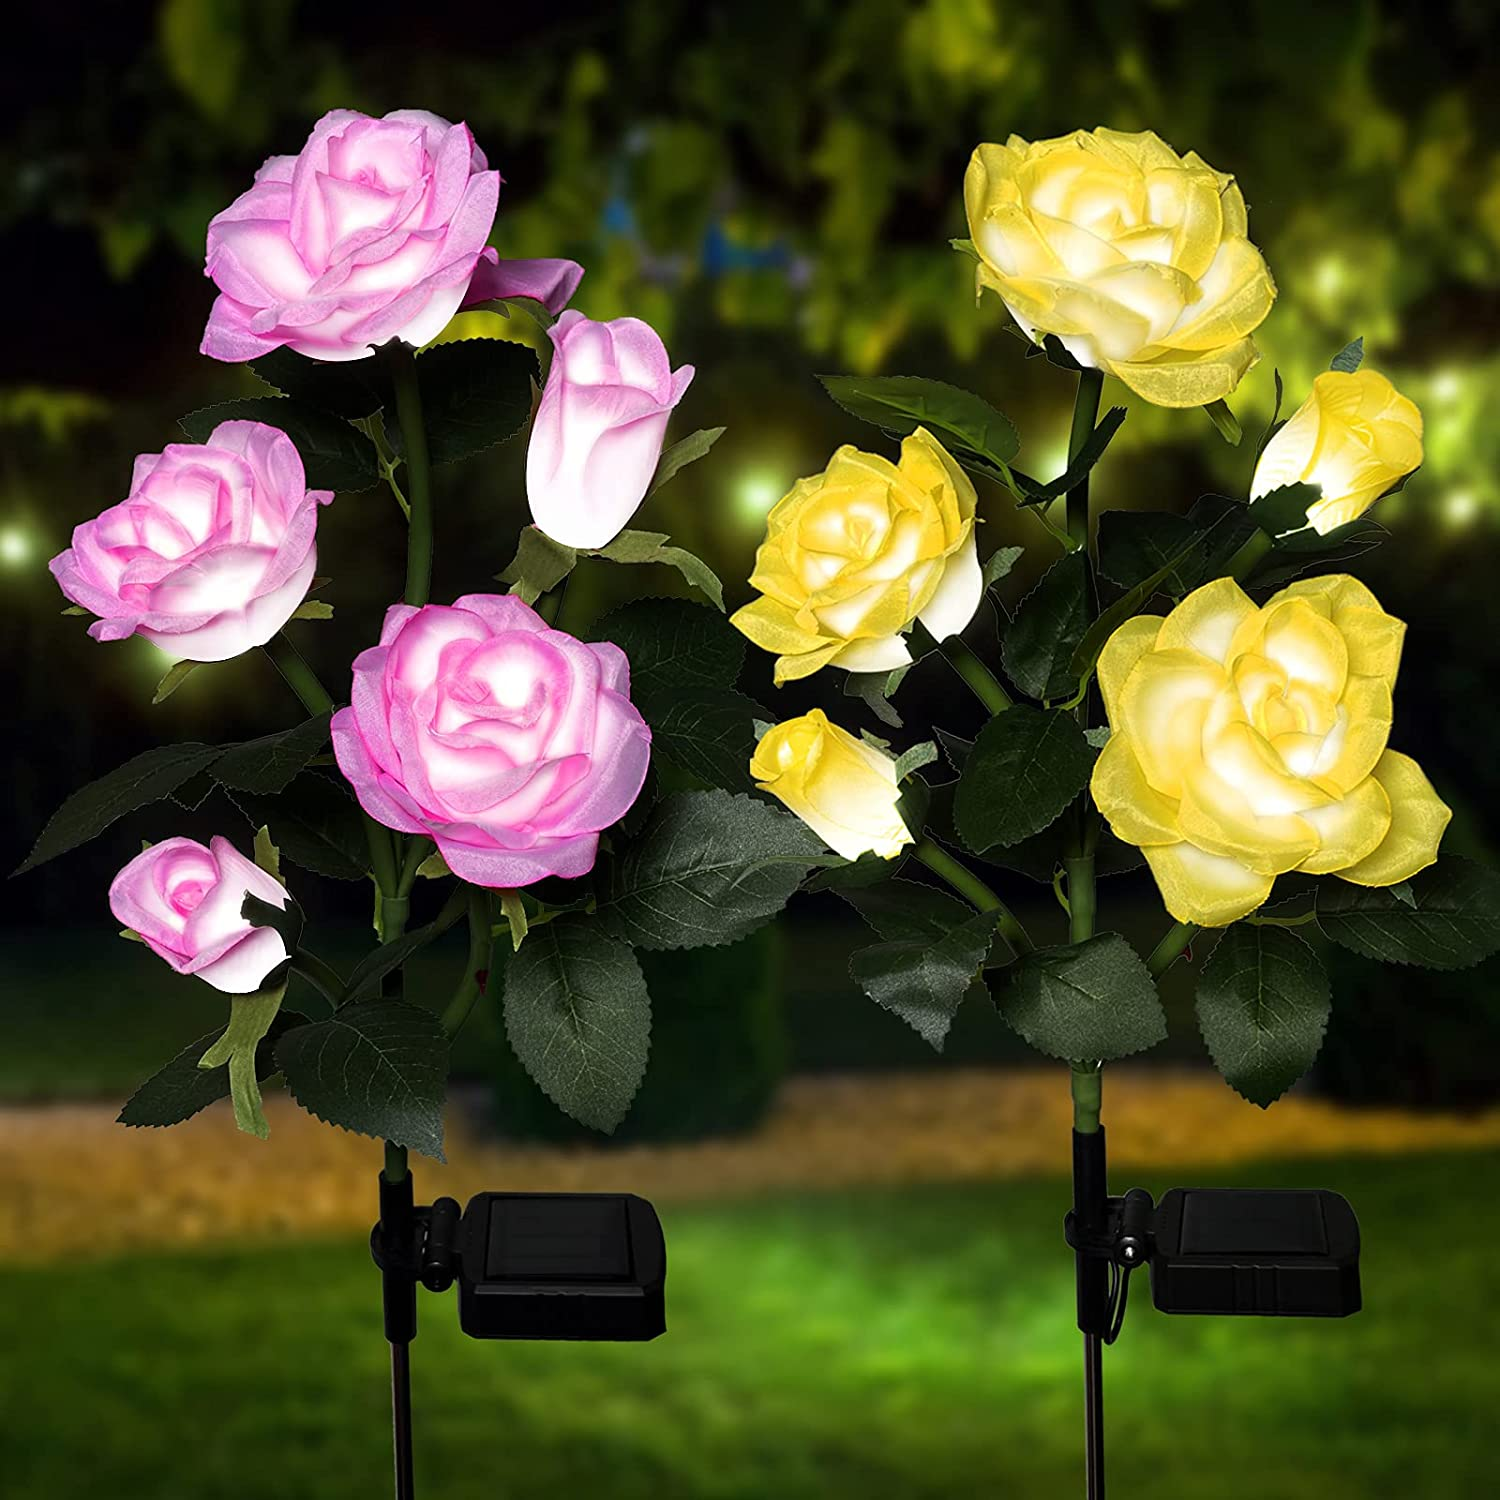 AMZQUE Max 73% OFF Solar Lights Outdoor Decorative Max 75% OFF Packs 2 Garden Lig